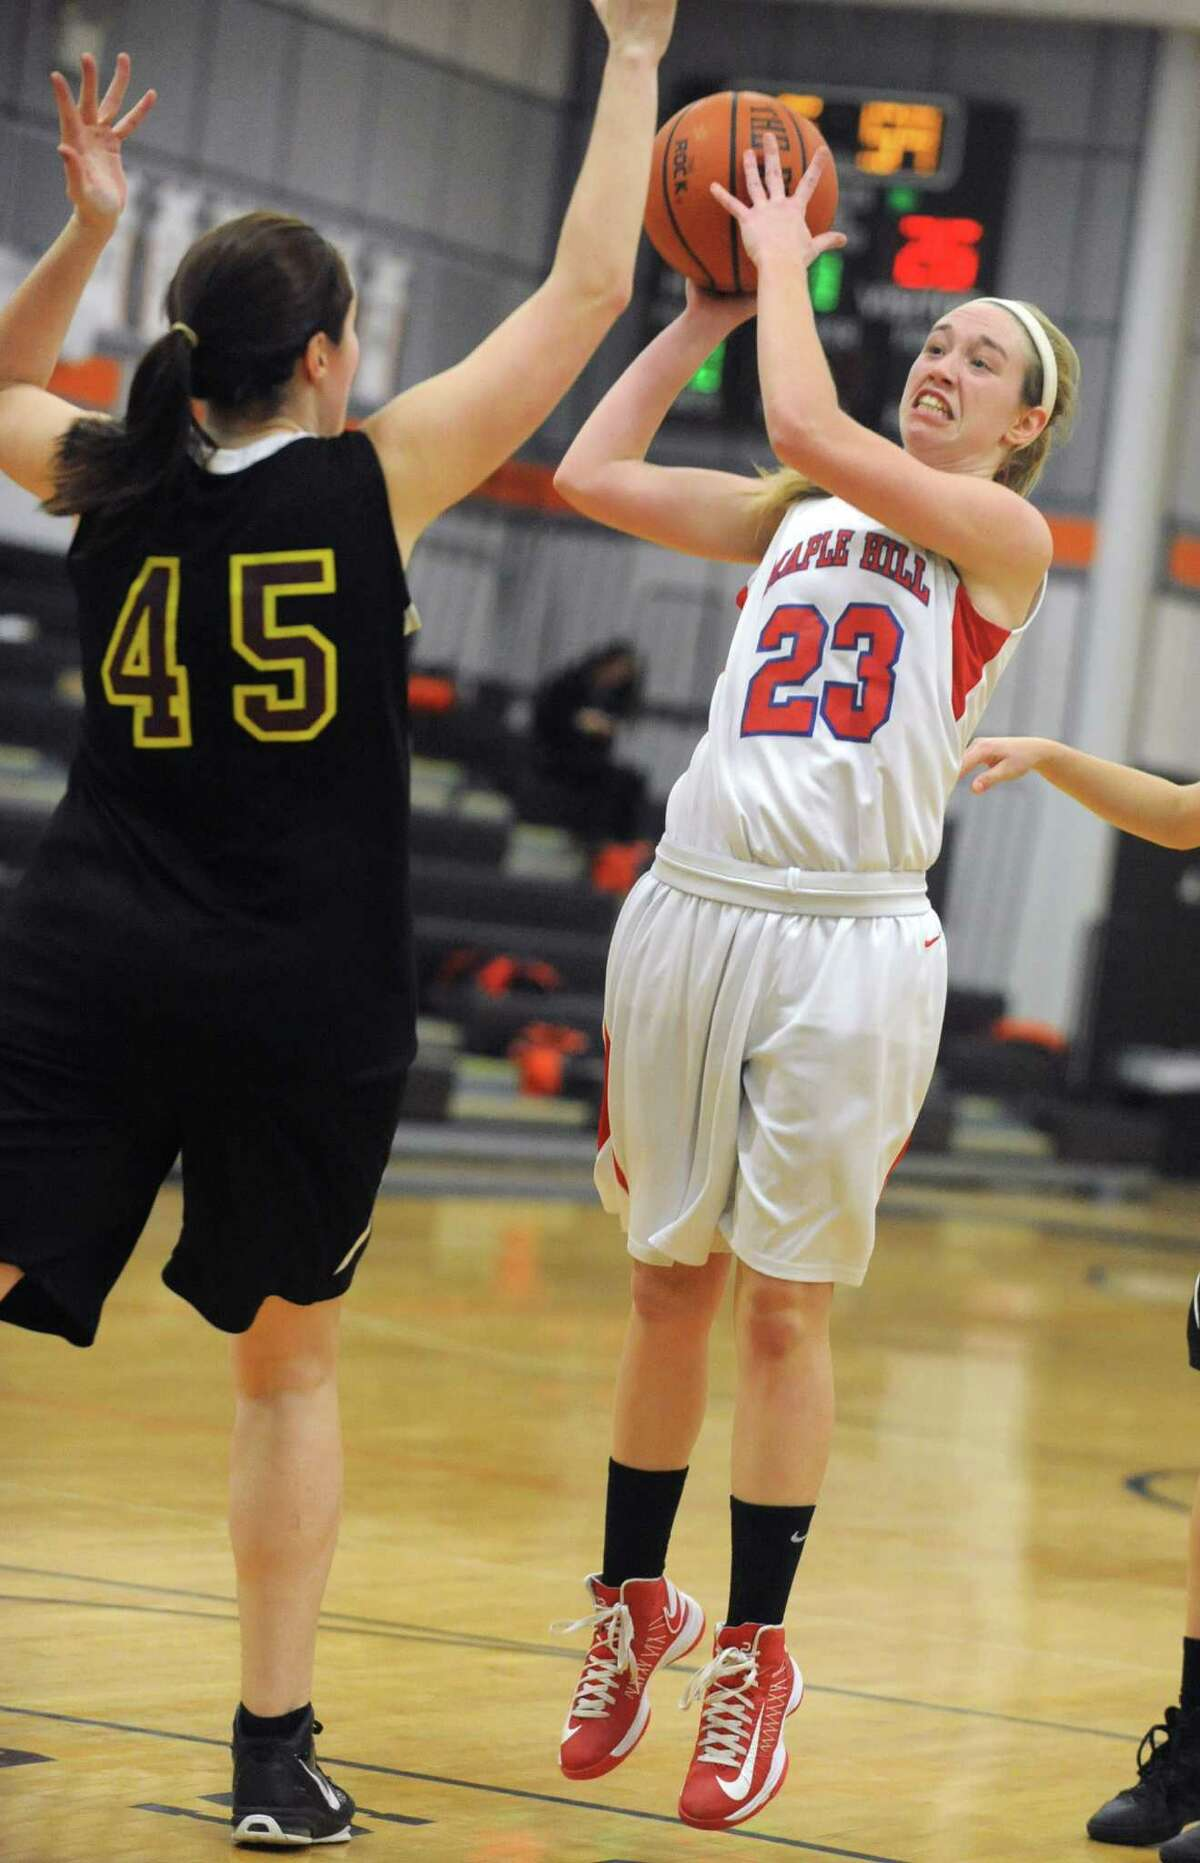 Maple Hills' Lindsay Mannion goes up for a jump shot during a basketball game against Berne Knox at Mohonasen High School on Friday Dec. 28, 2012 in Albany, N.Y. (Lori Van Buren / Times Union)